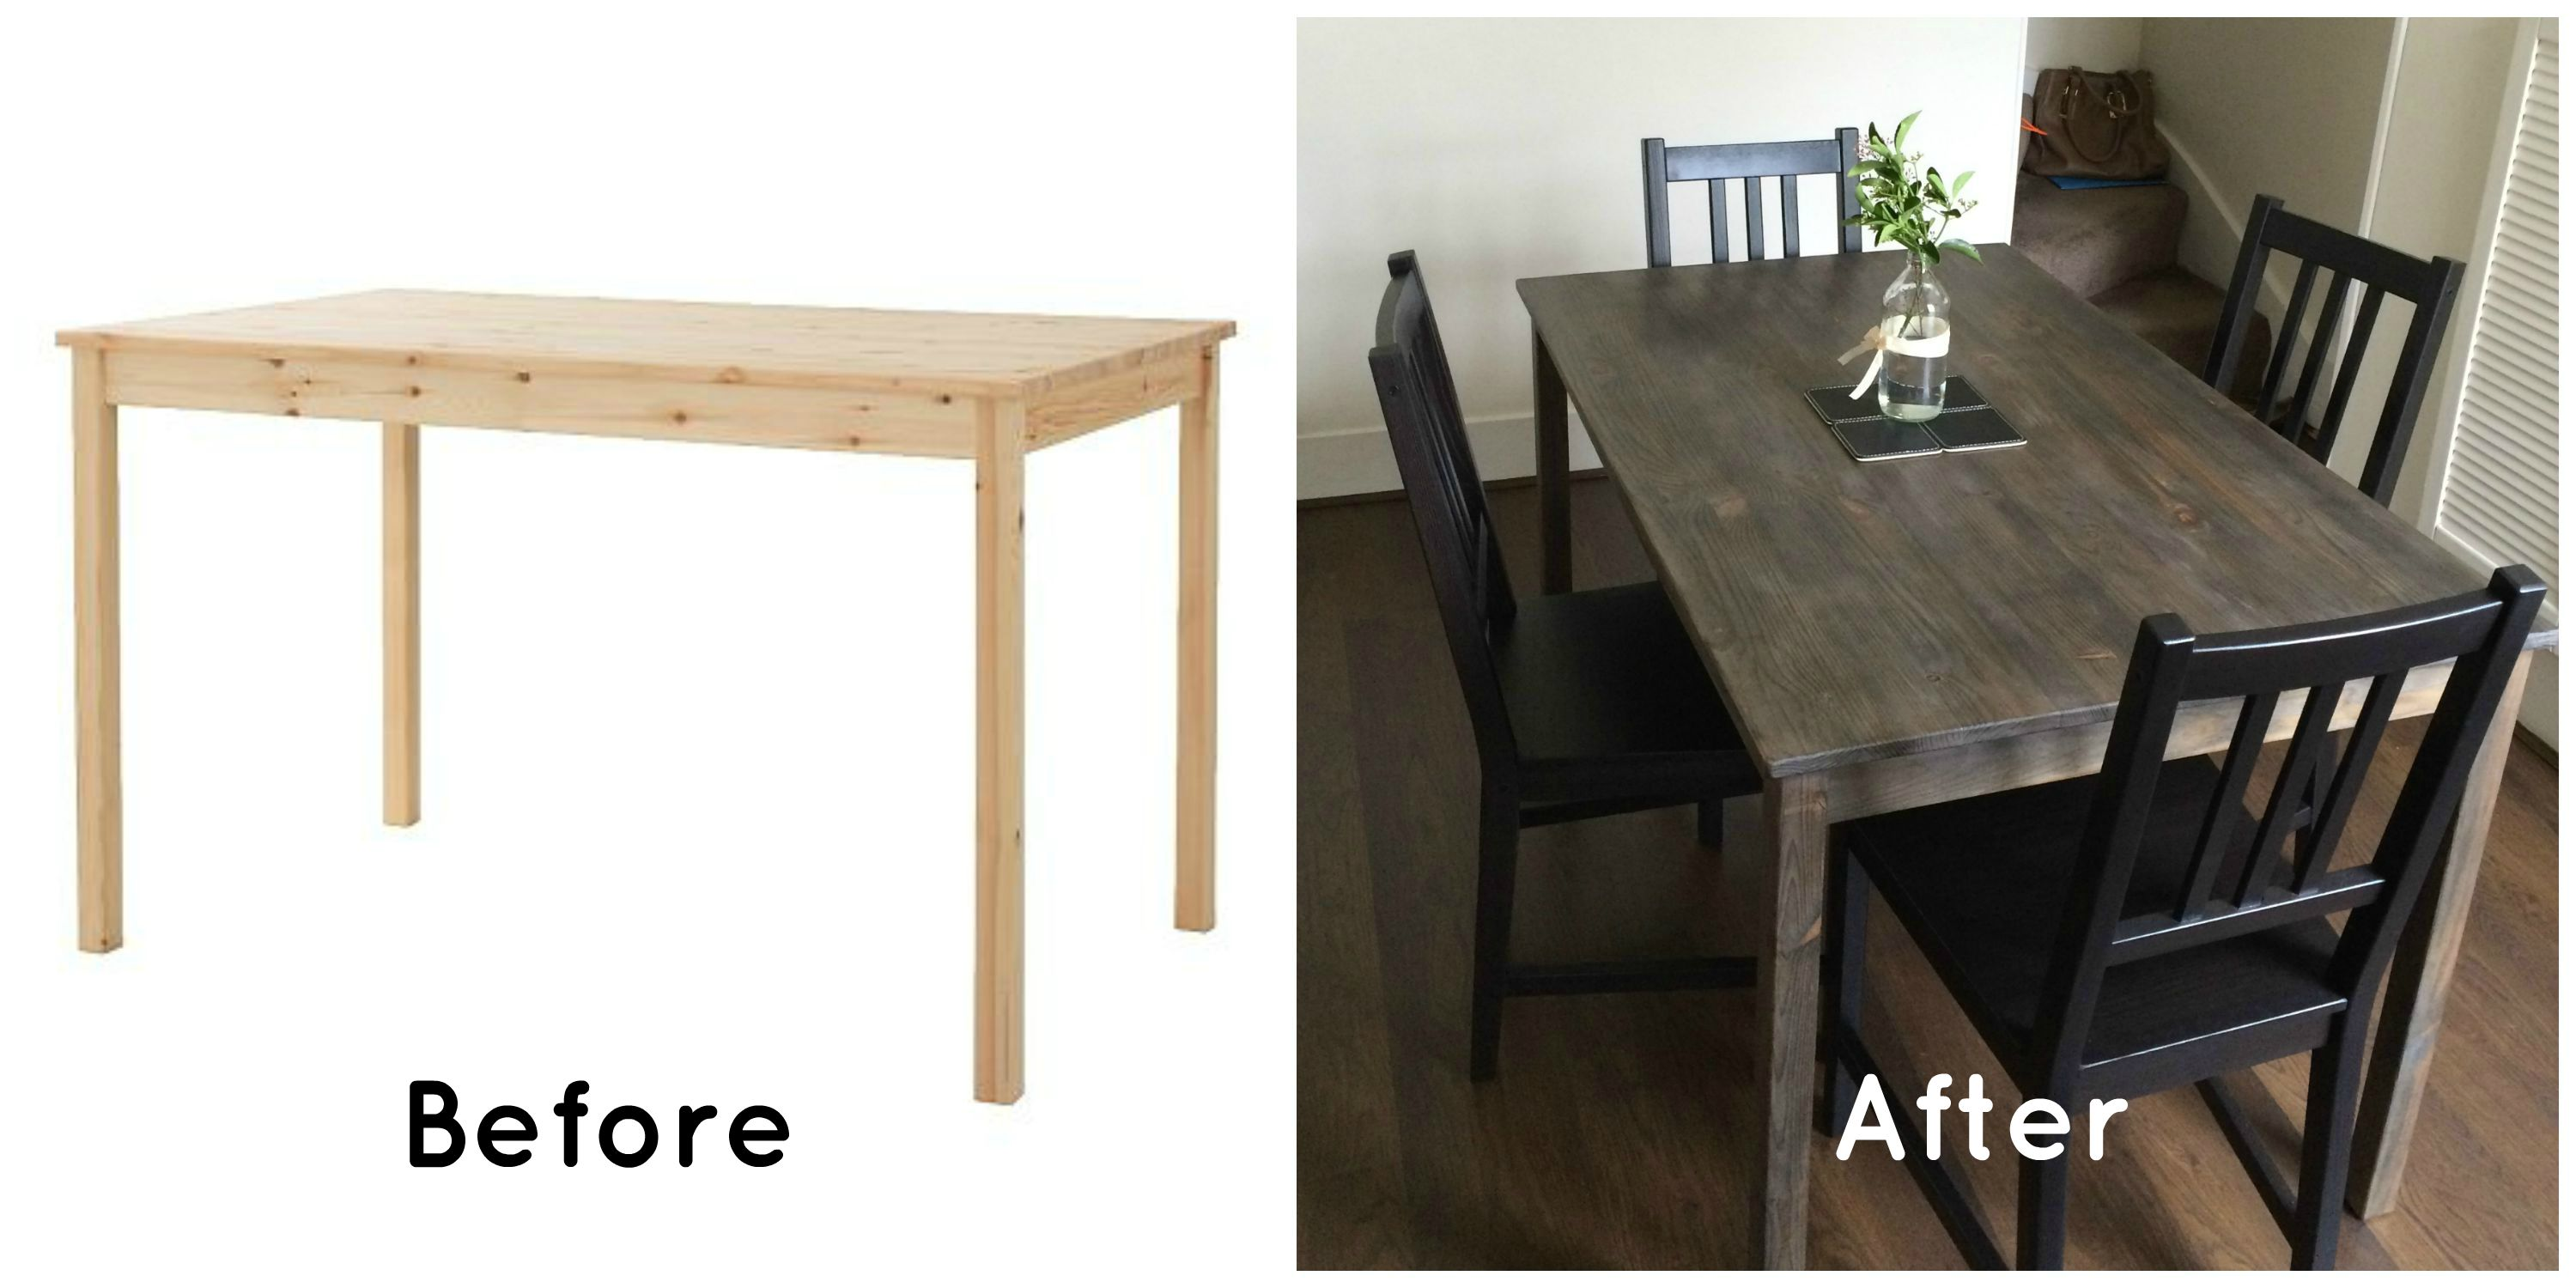 Dressing up ikea tables c l a r i m i c h e l e - Agencement dressing ikea ...